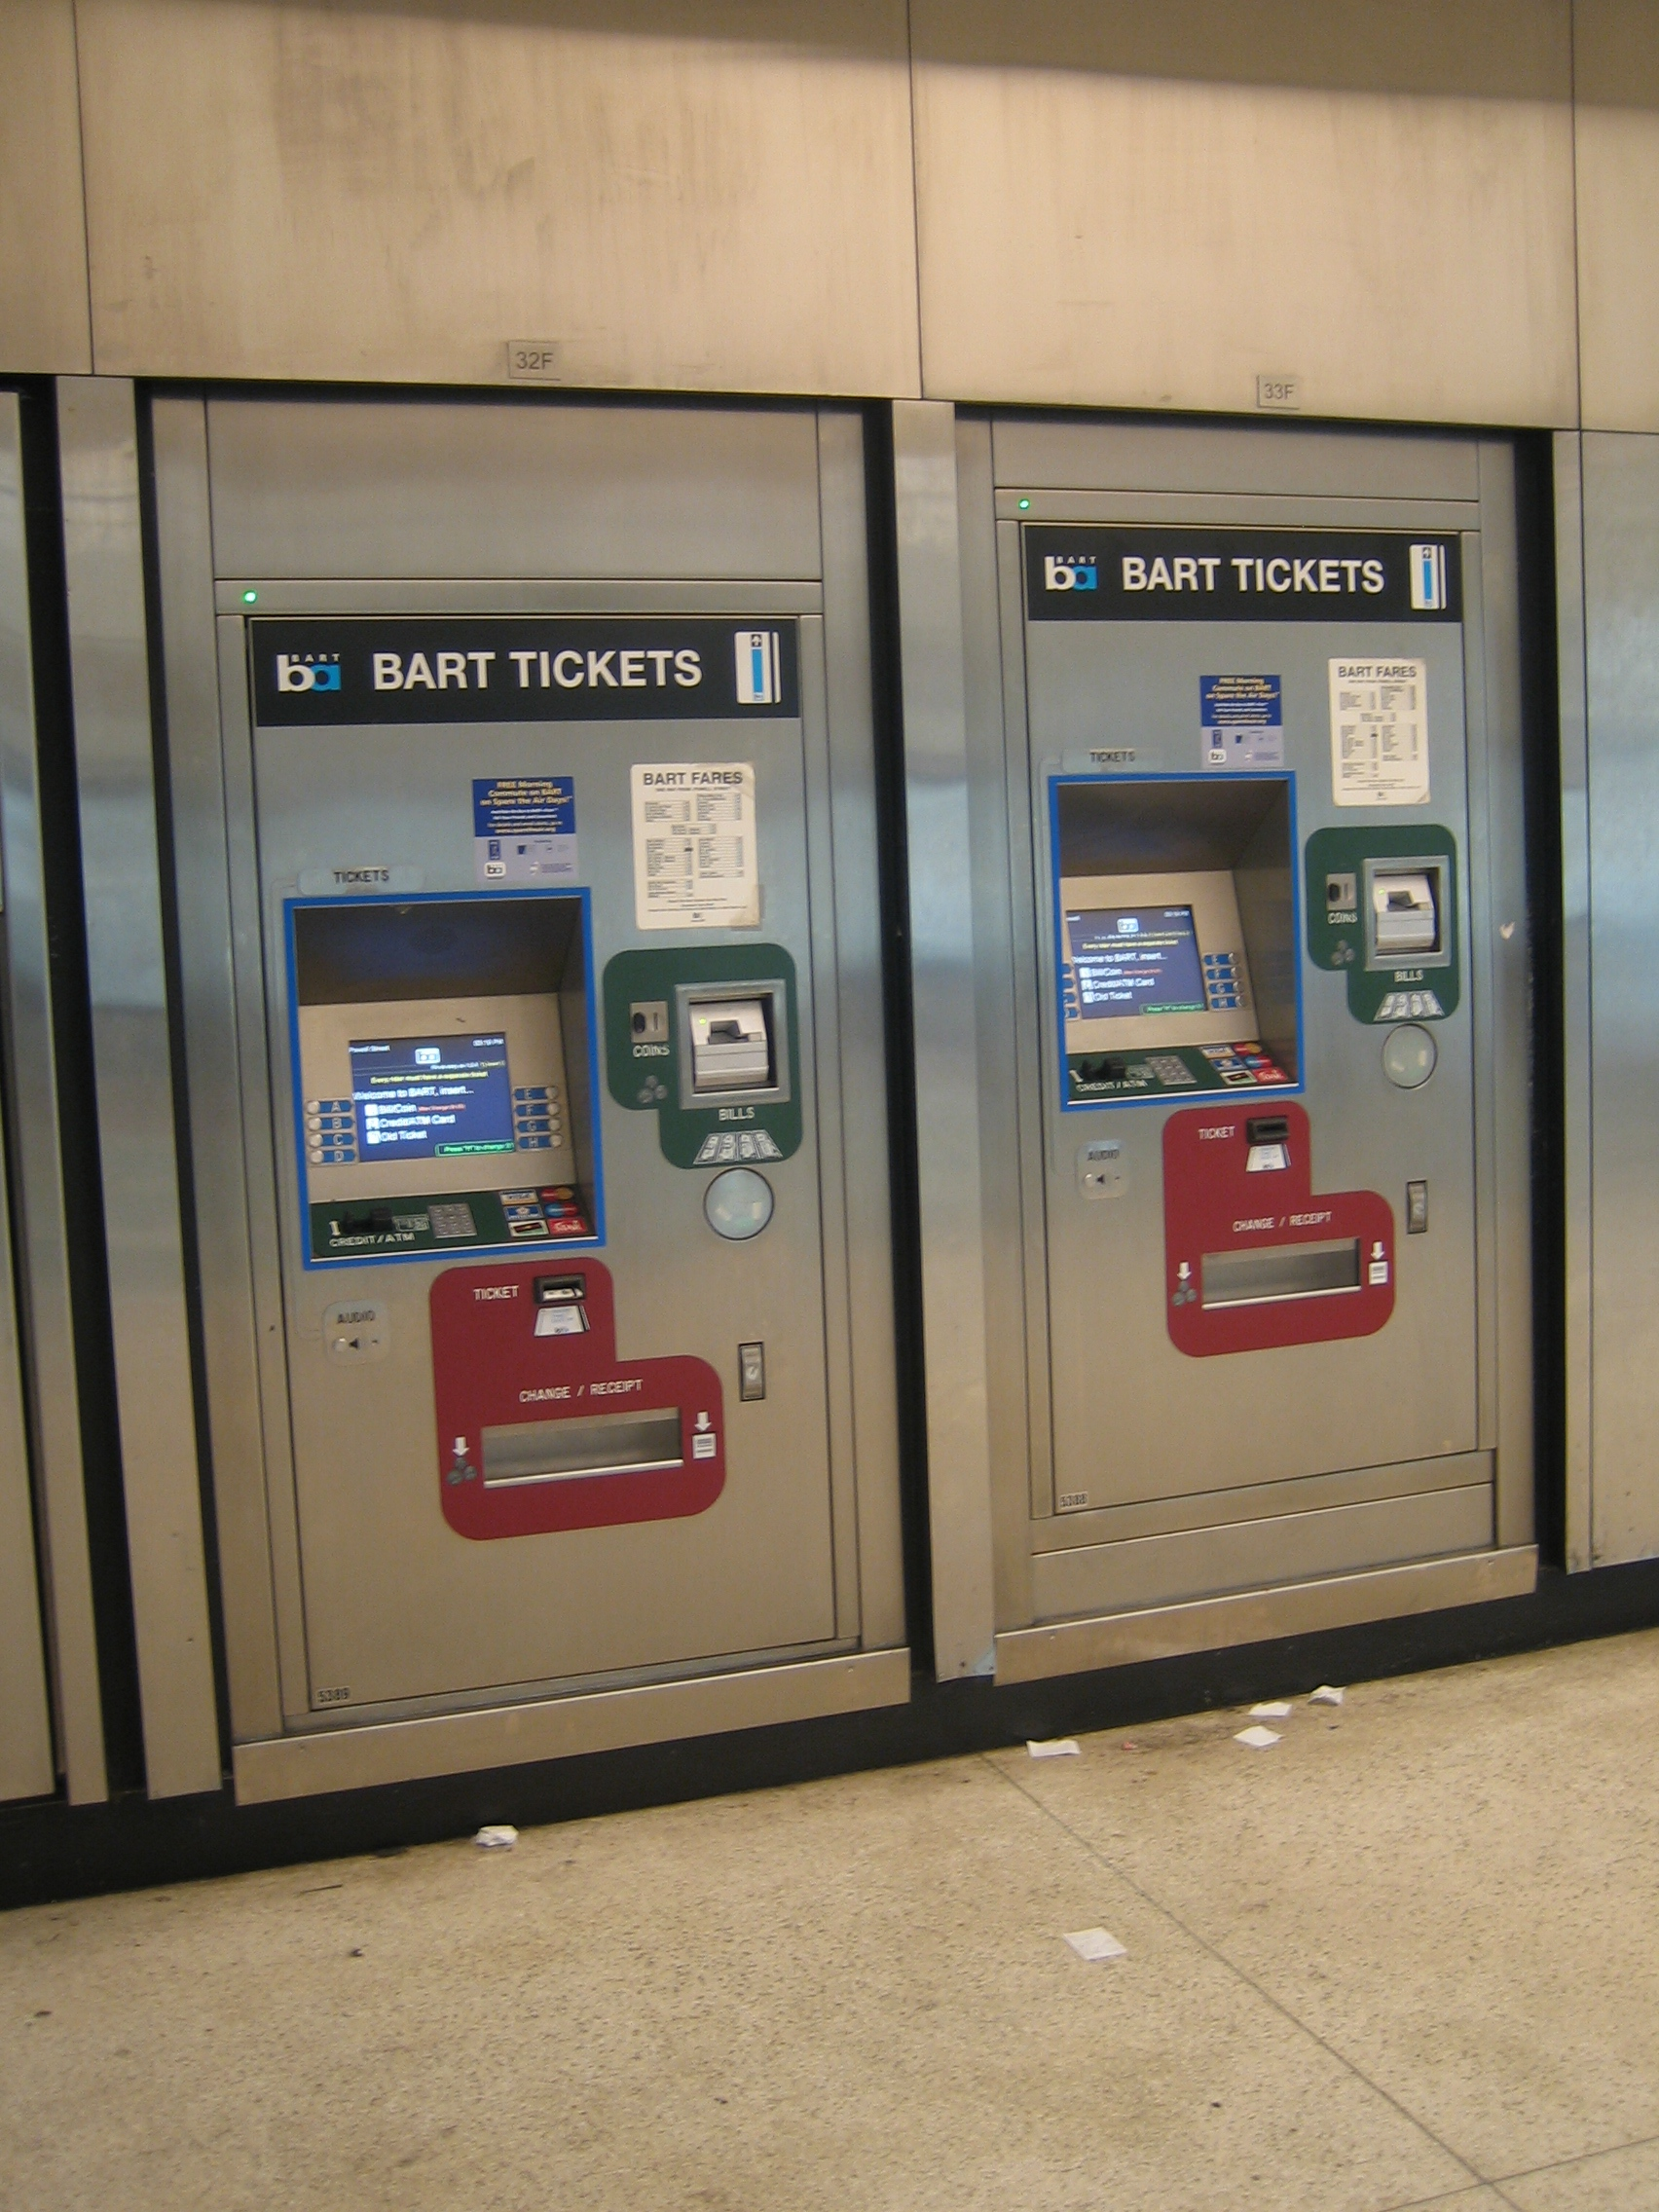 Ticket vending machines at the Powell Street Station